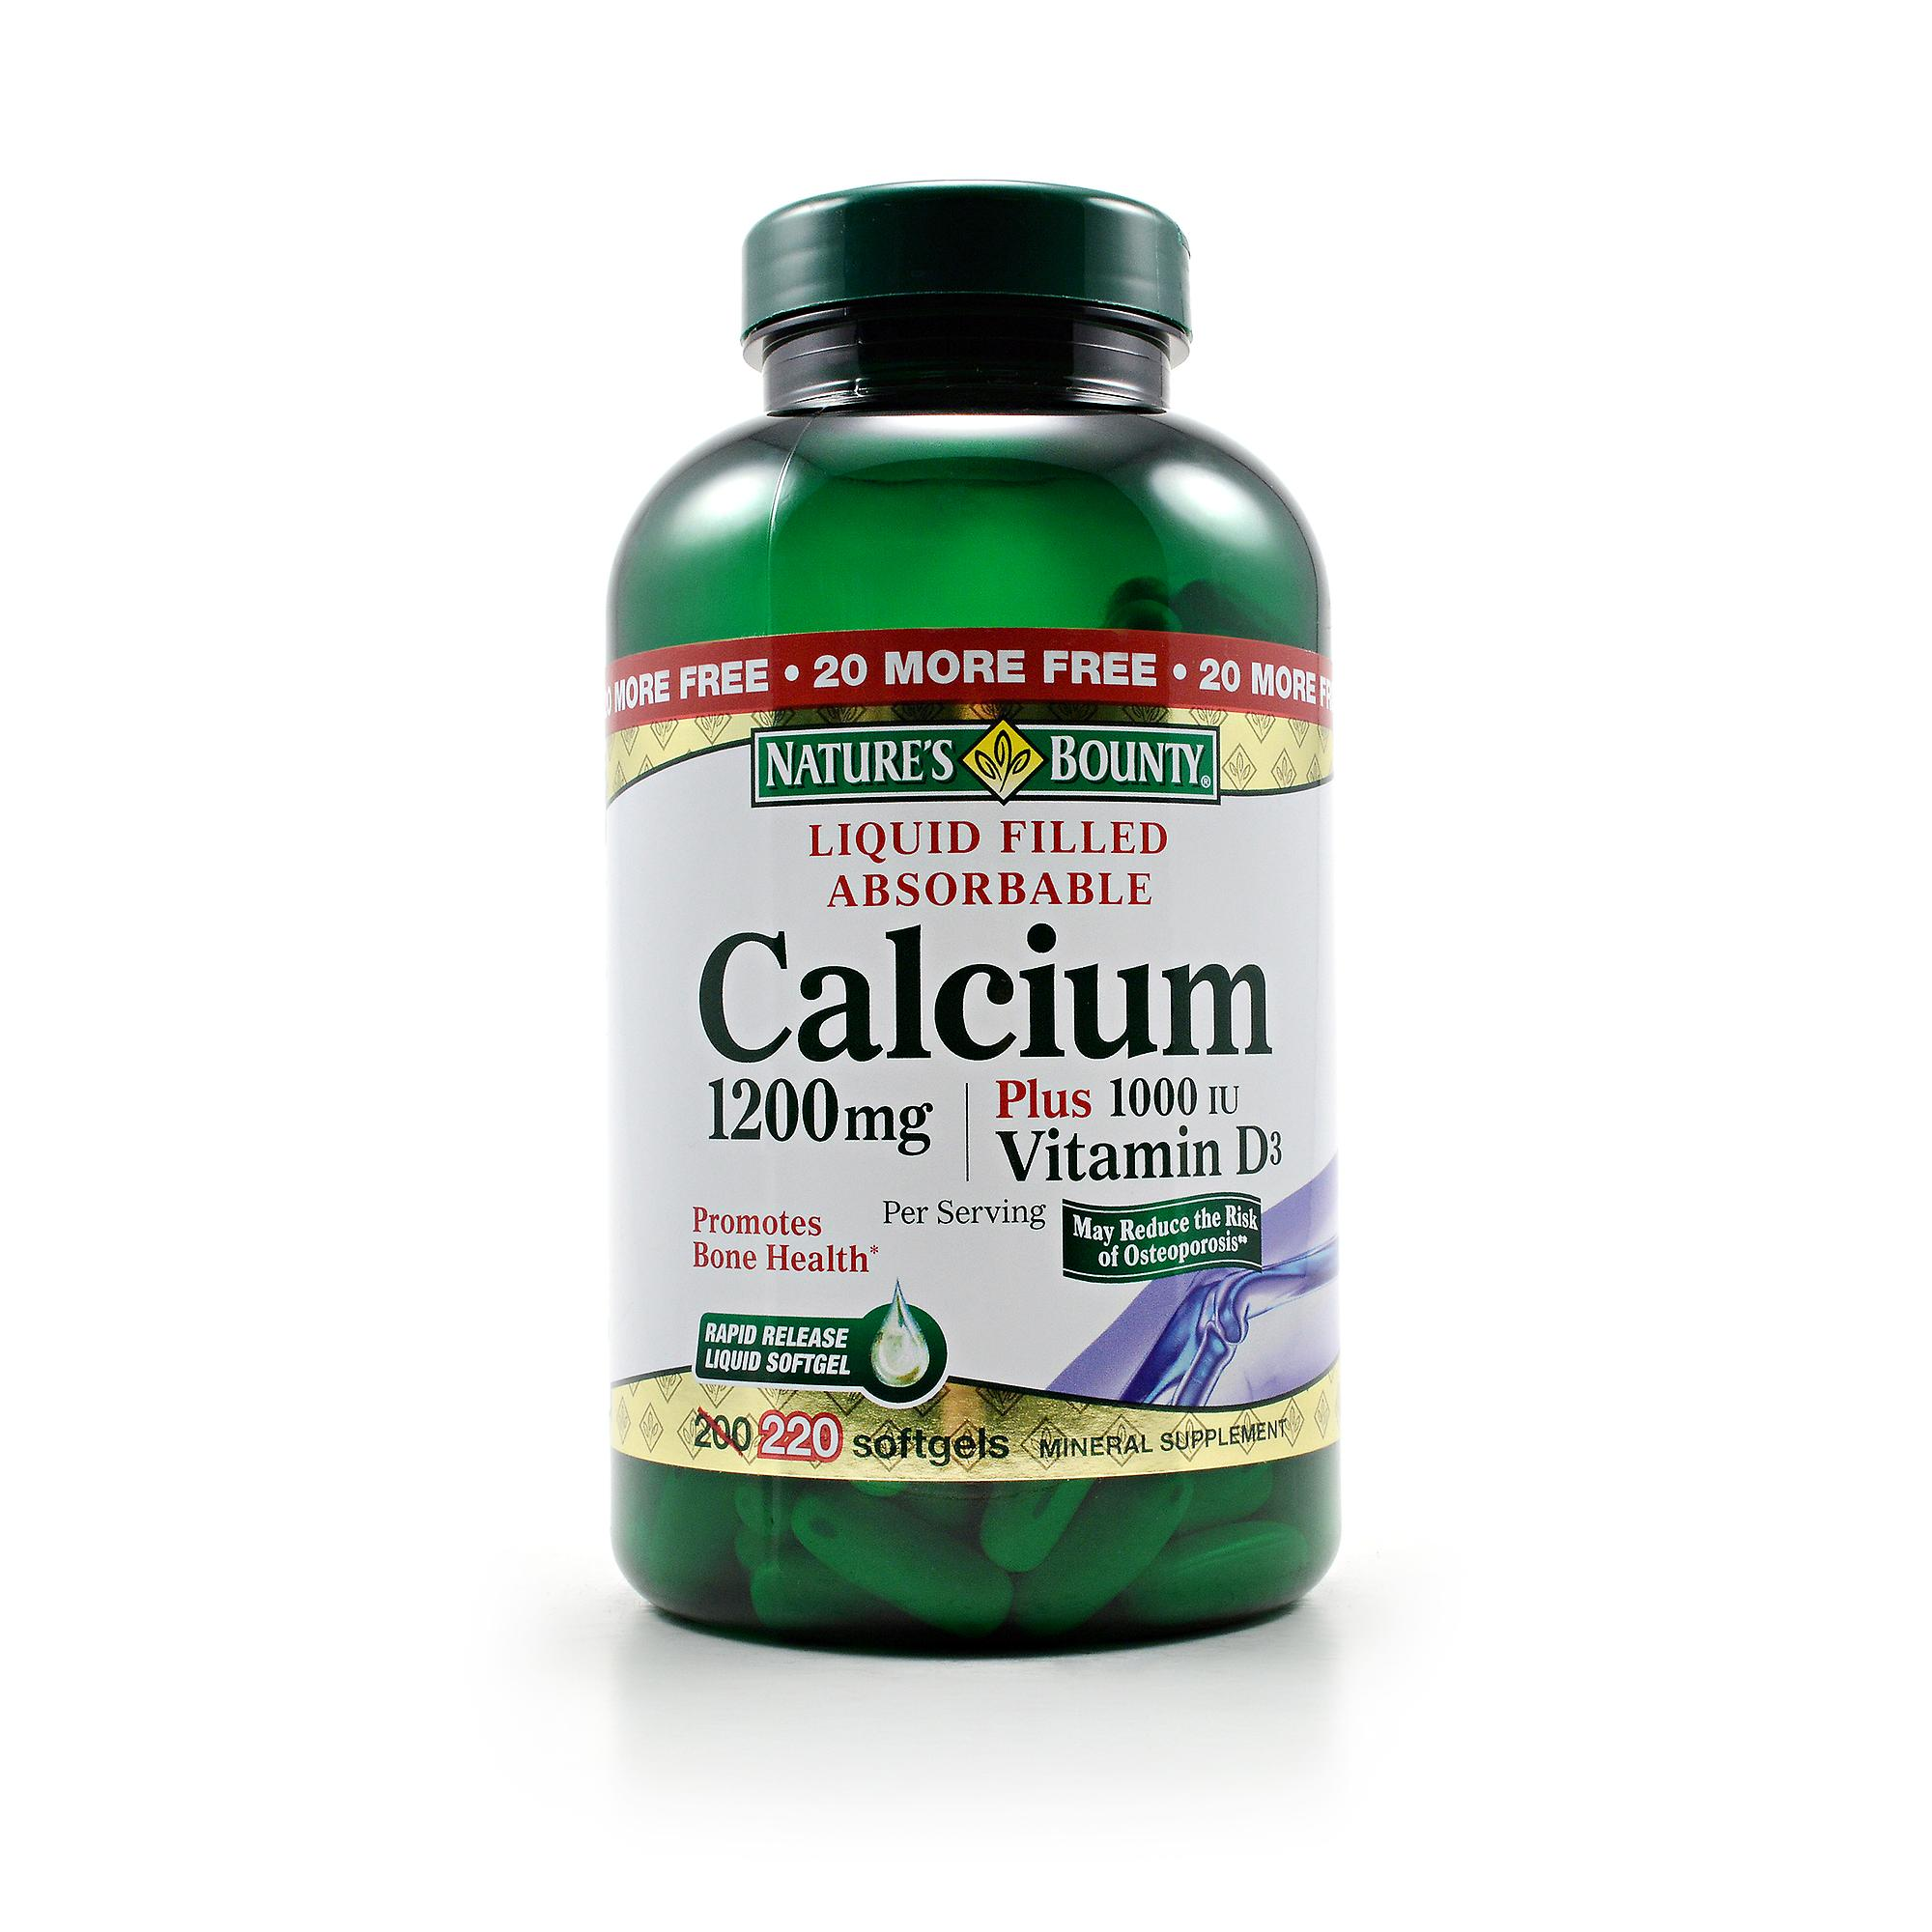 Nature 39 s bounty calcium plus vitamin d3 review labdoor for Nature s bounty fish oil review